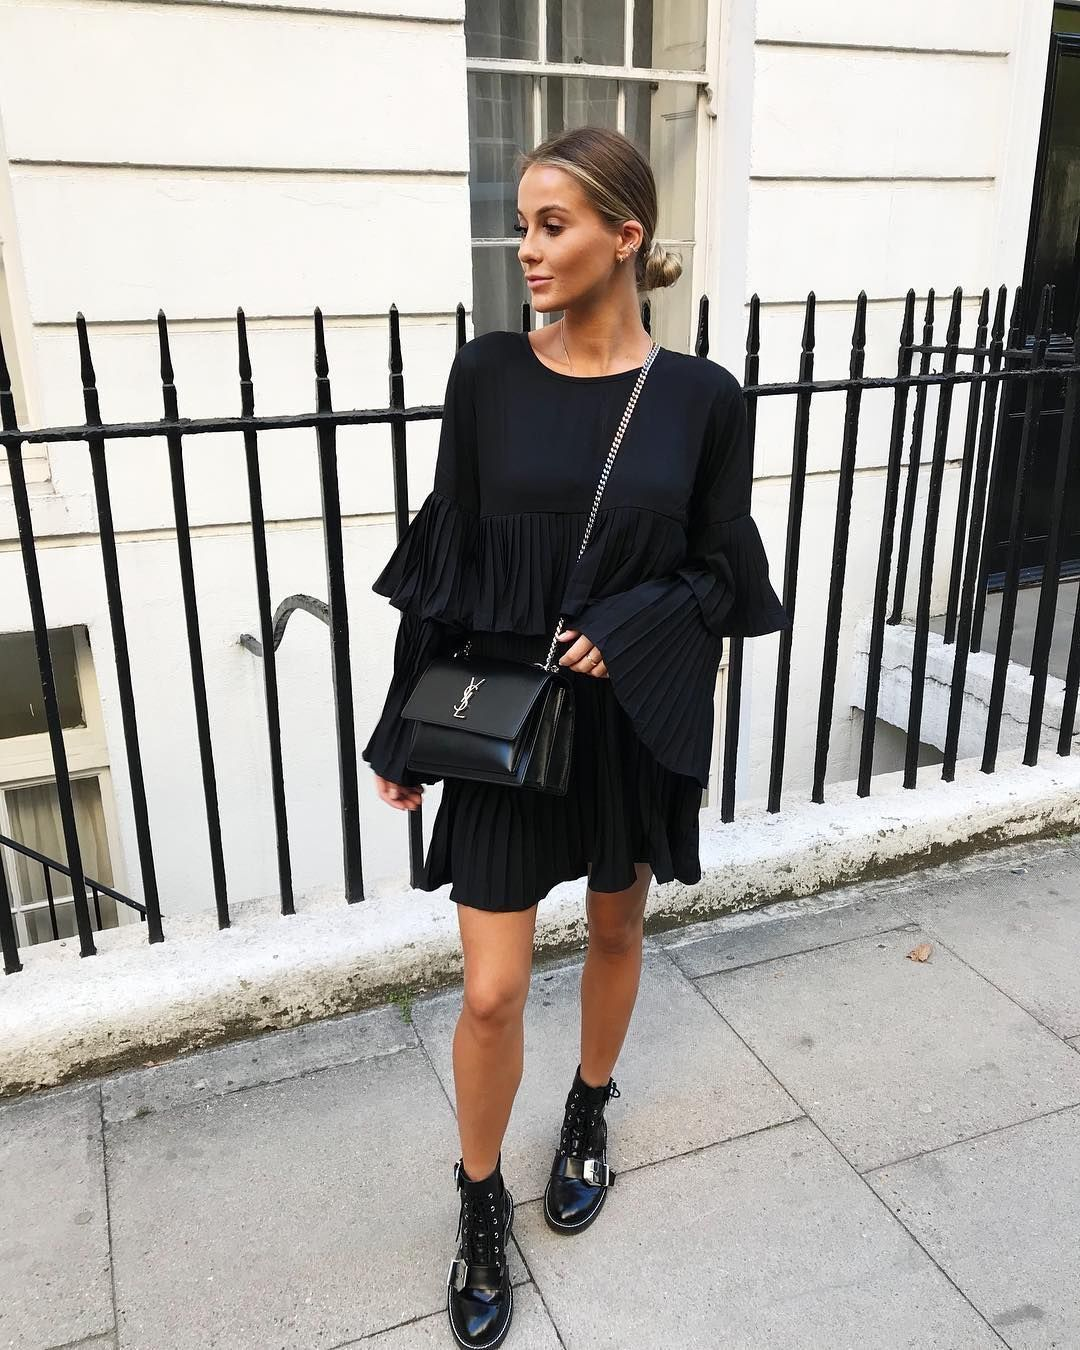 Pretty Black Dress With Chic Black Leather Handbag And Trendy Boots Fashion Black Women Fashion Casual Outfits [ 1350 x 1080 Pixel ]